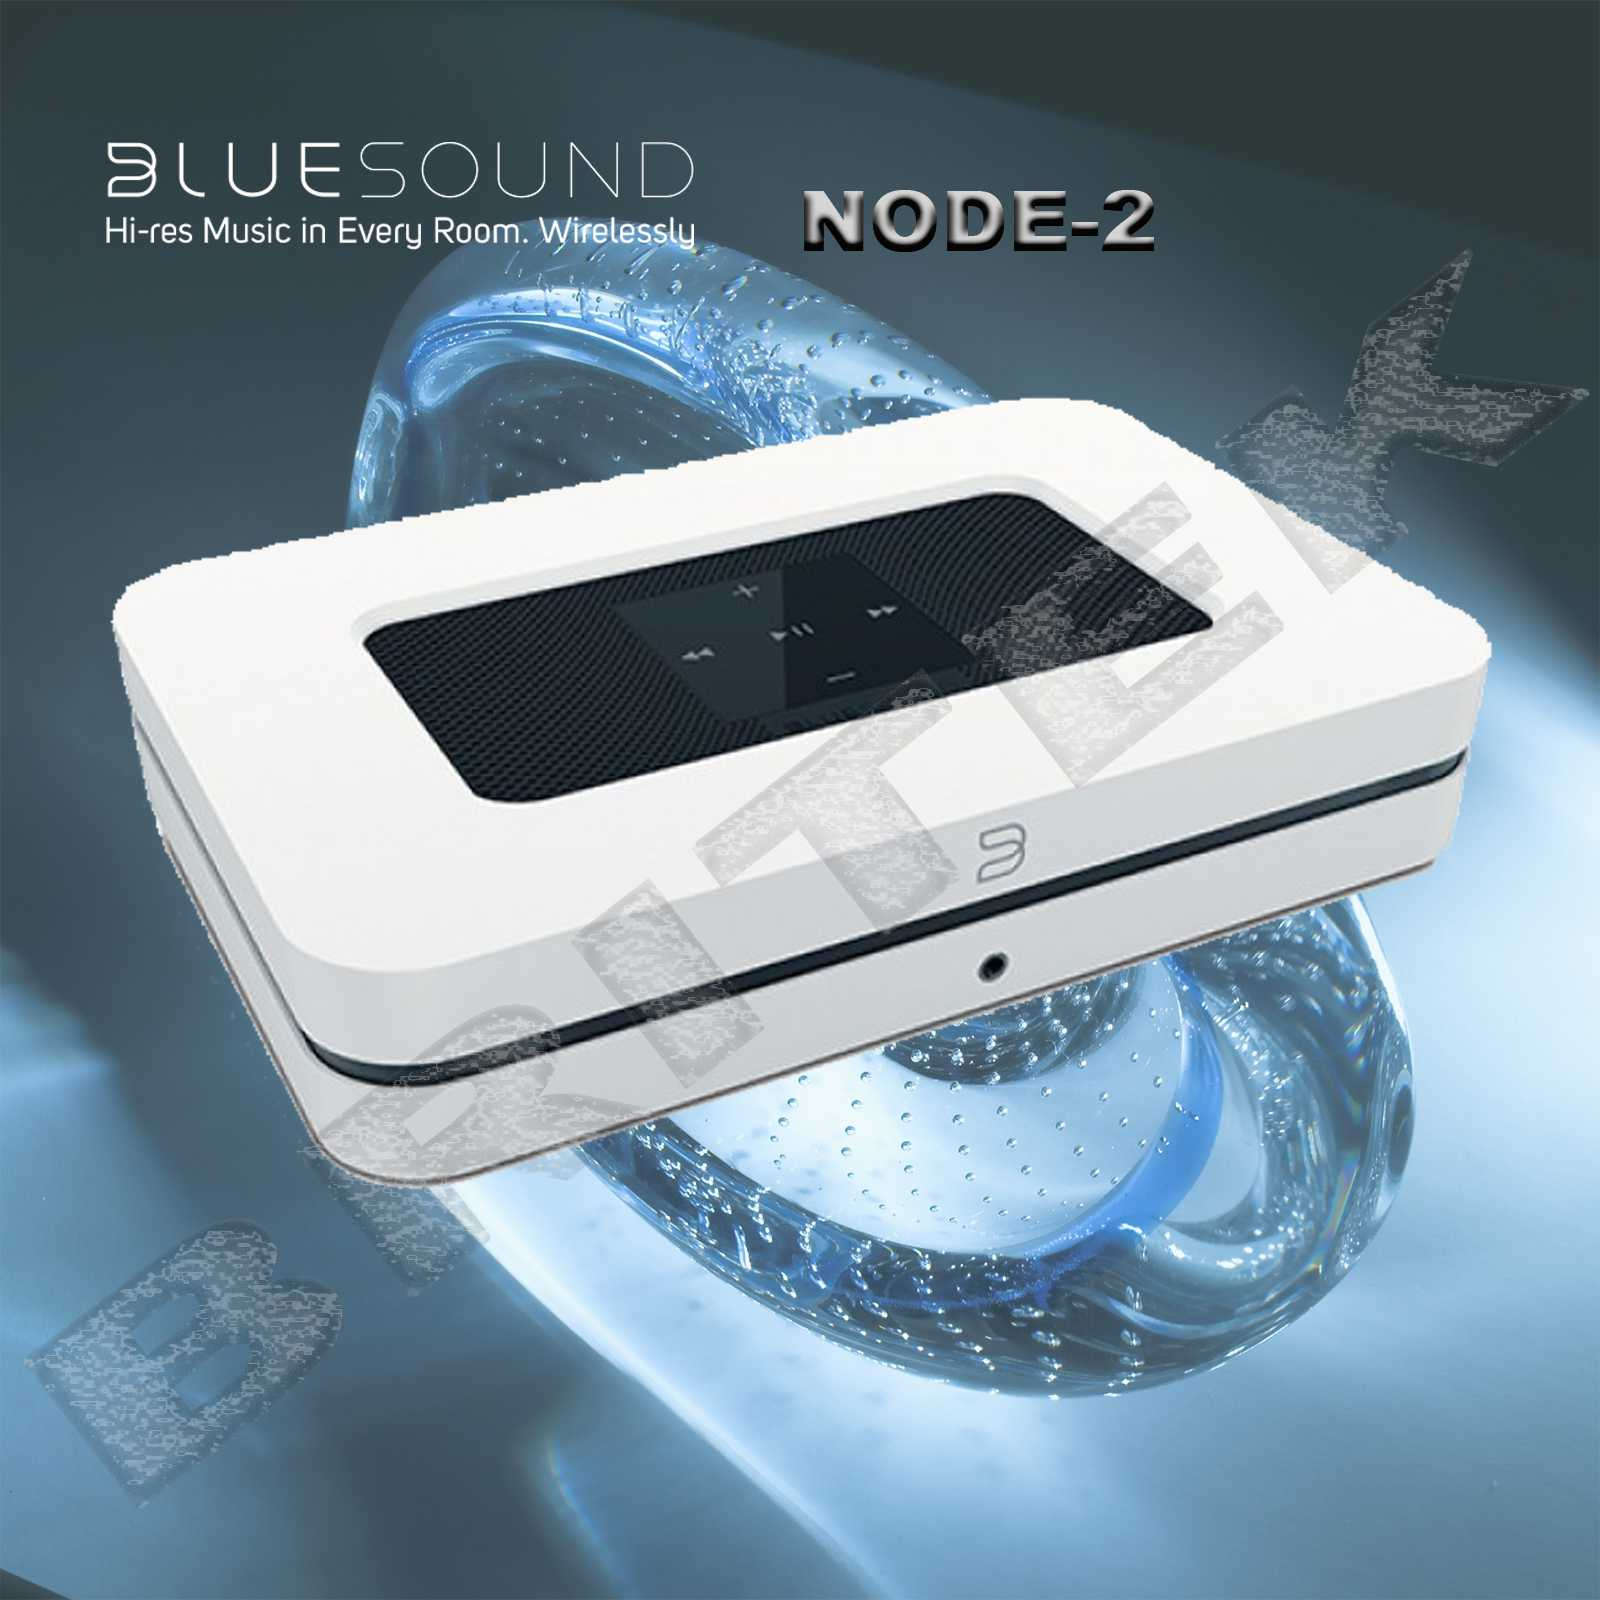 Bluesound NODE-2